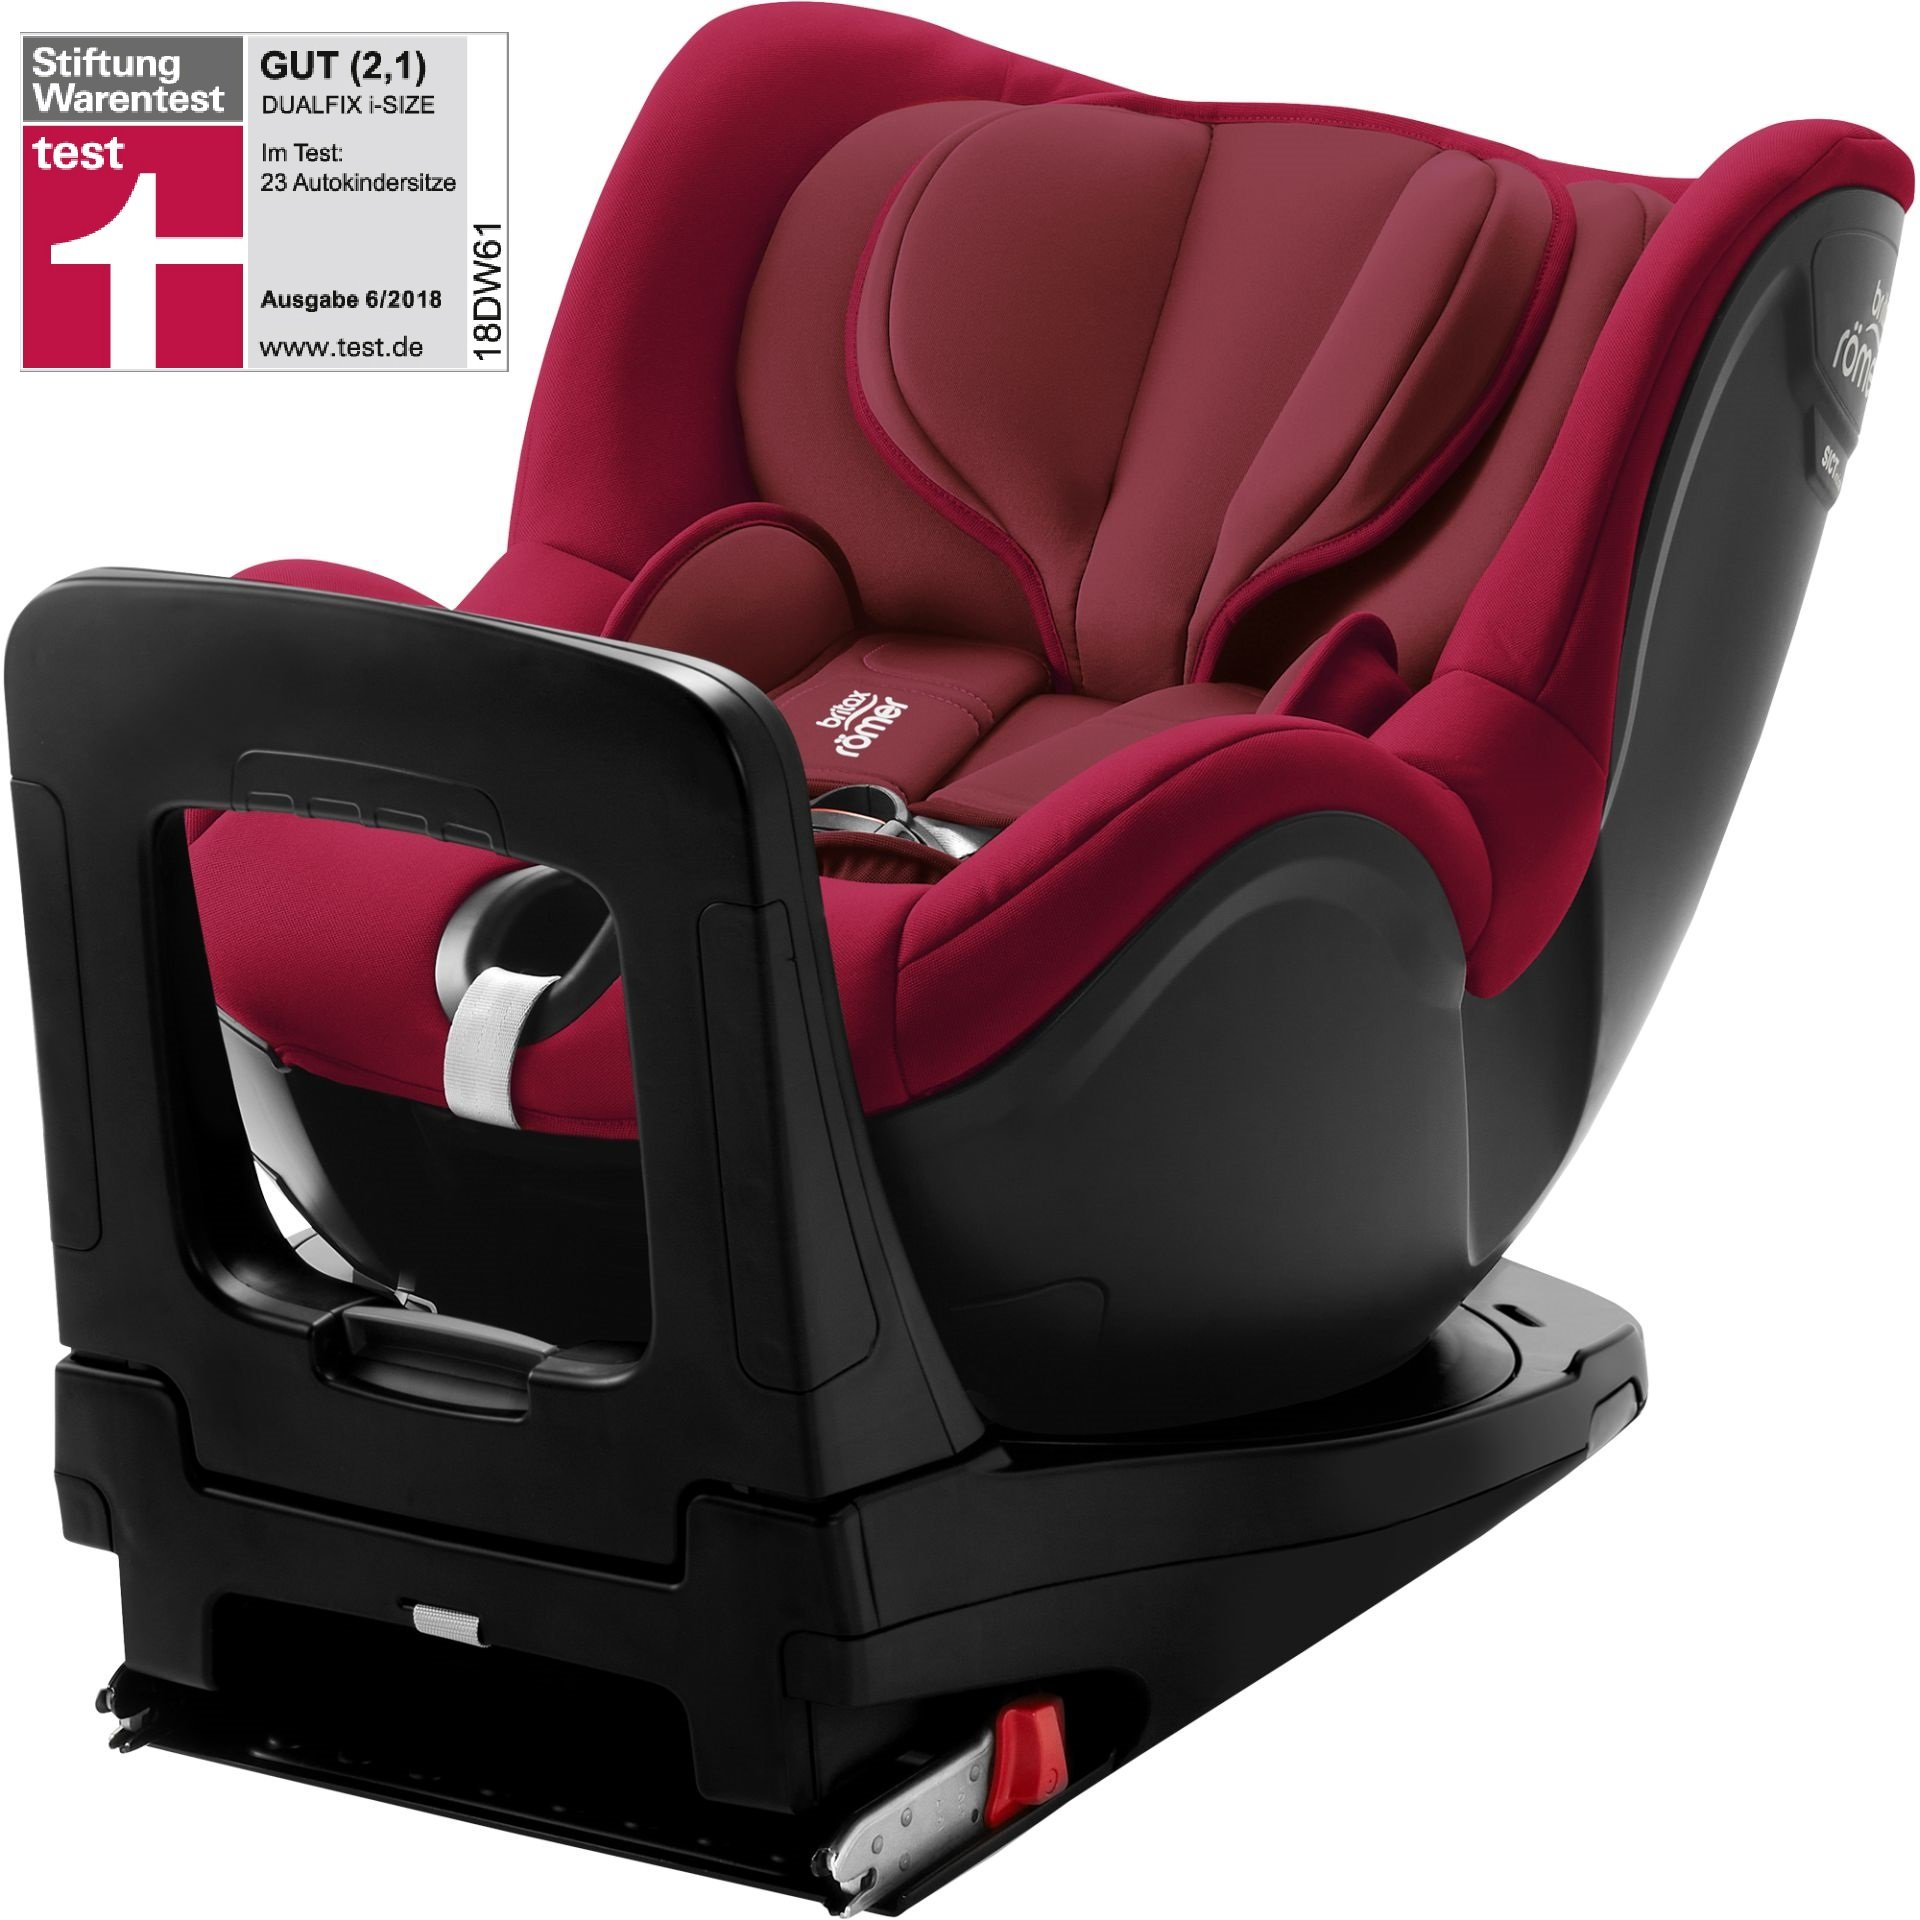 britax r mer child car seat dualfix i size 2018 flame red buy at kidsroom car seats. Black Bedroom Furniture Sets. Home Design Ideas